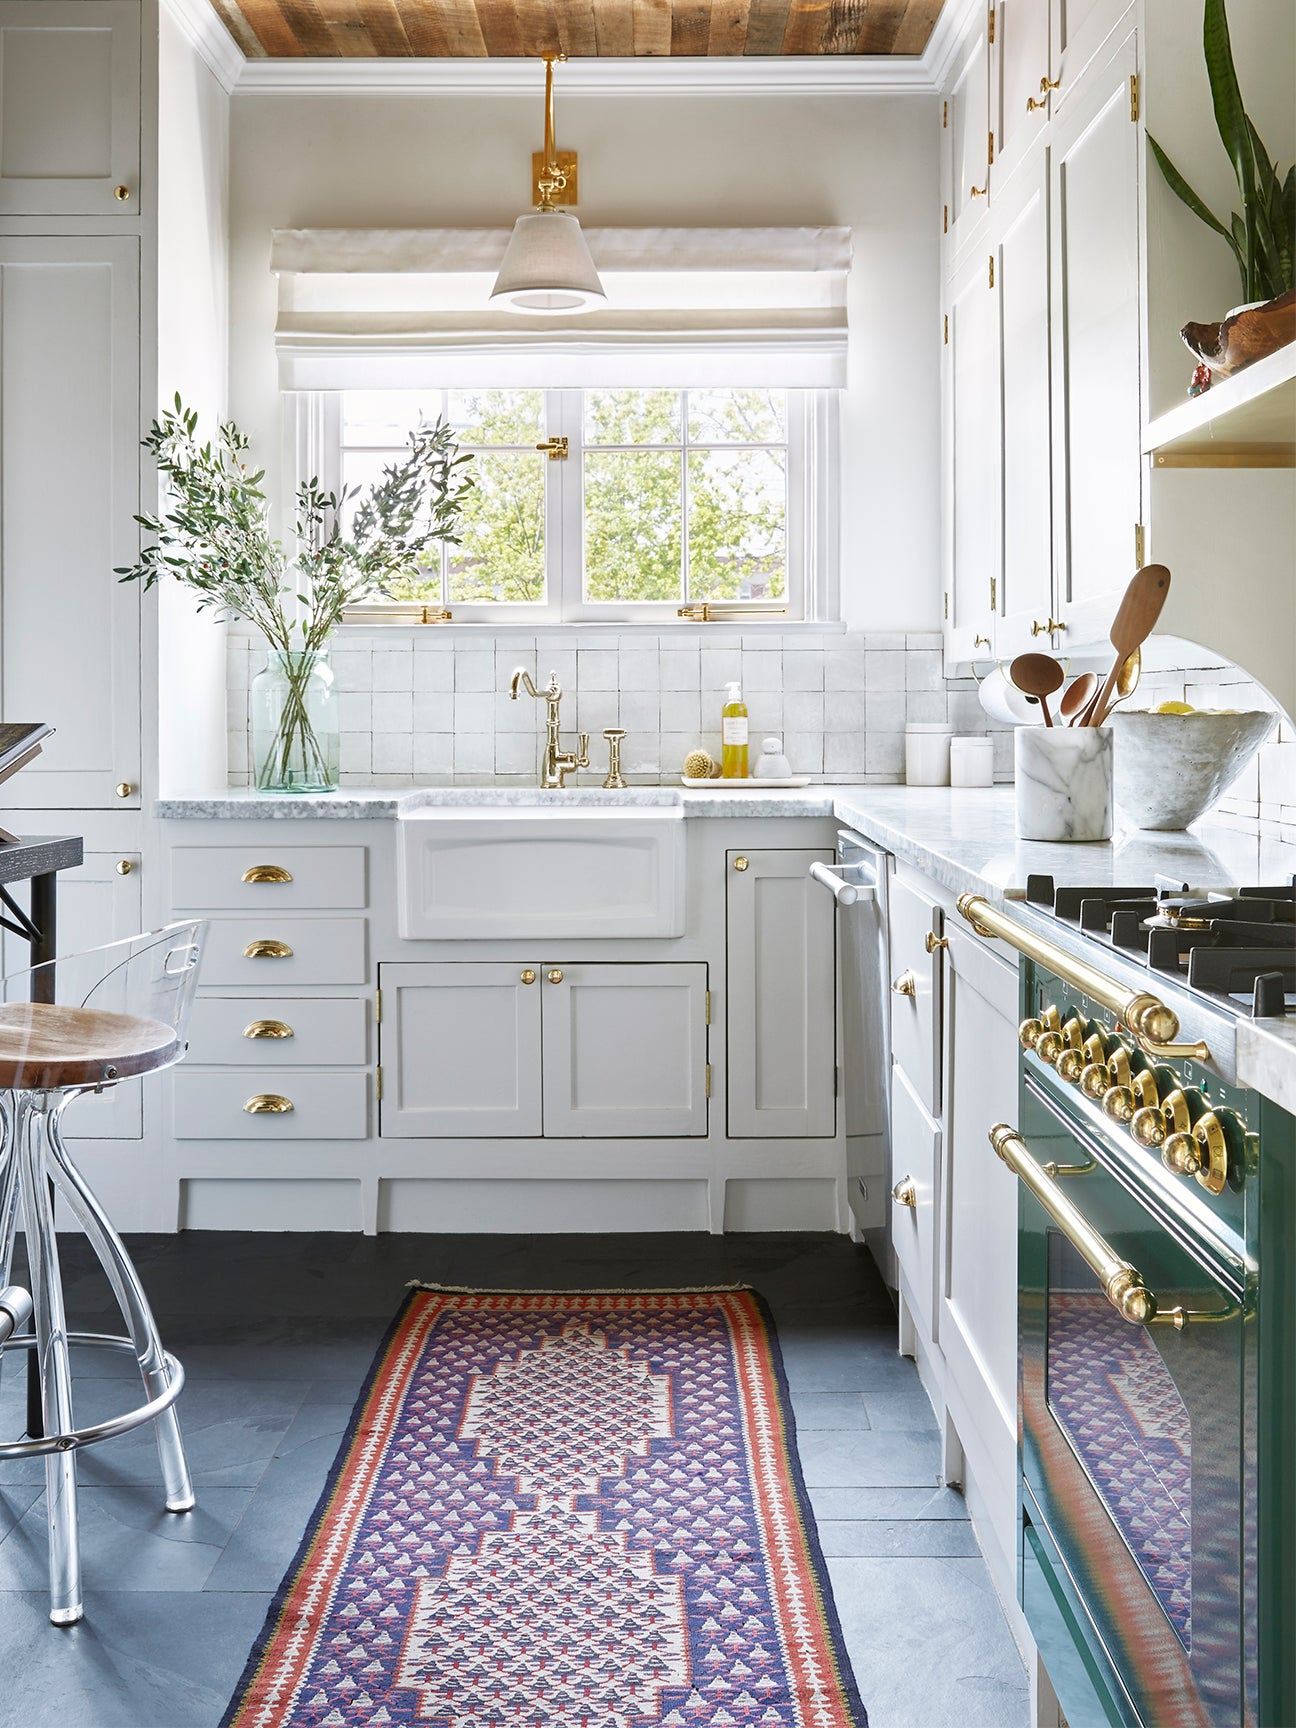 11 Shaker Kitchen Cabinets That Live Up to Their No-Fuss Name